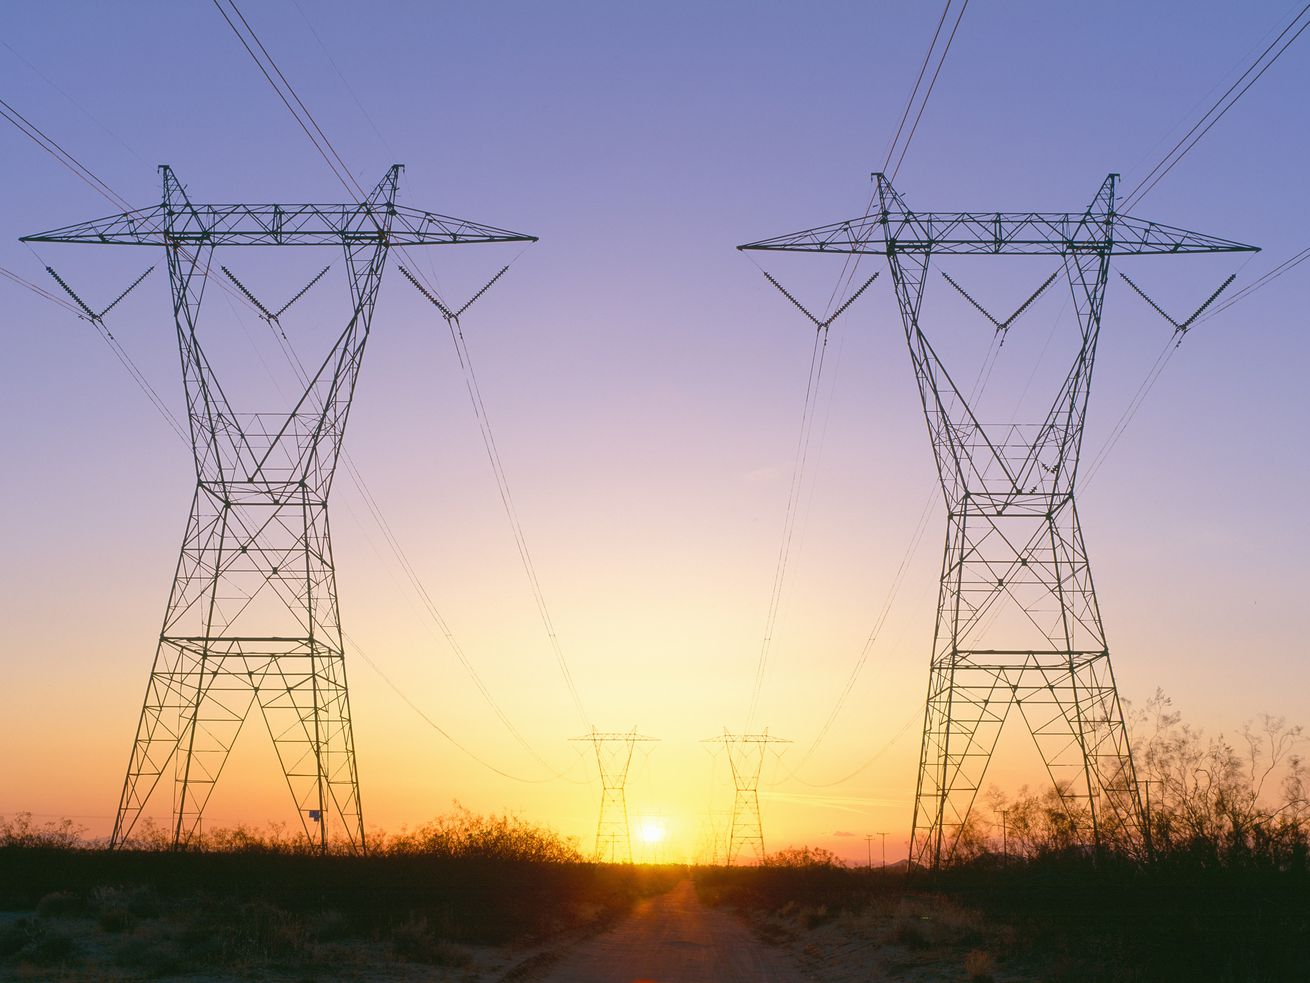 Sunset on electrical transmission towers near Lancaster, California.